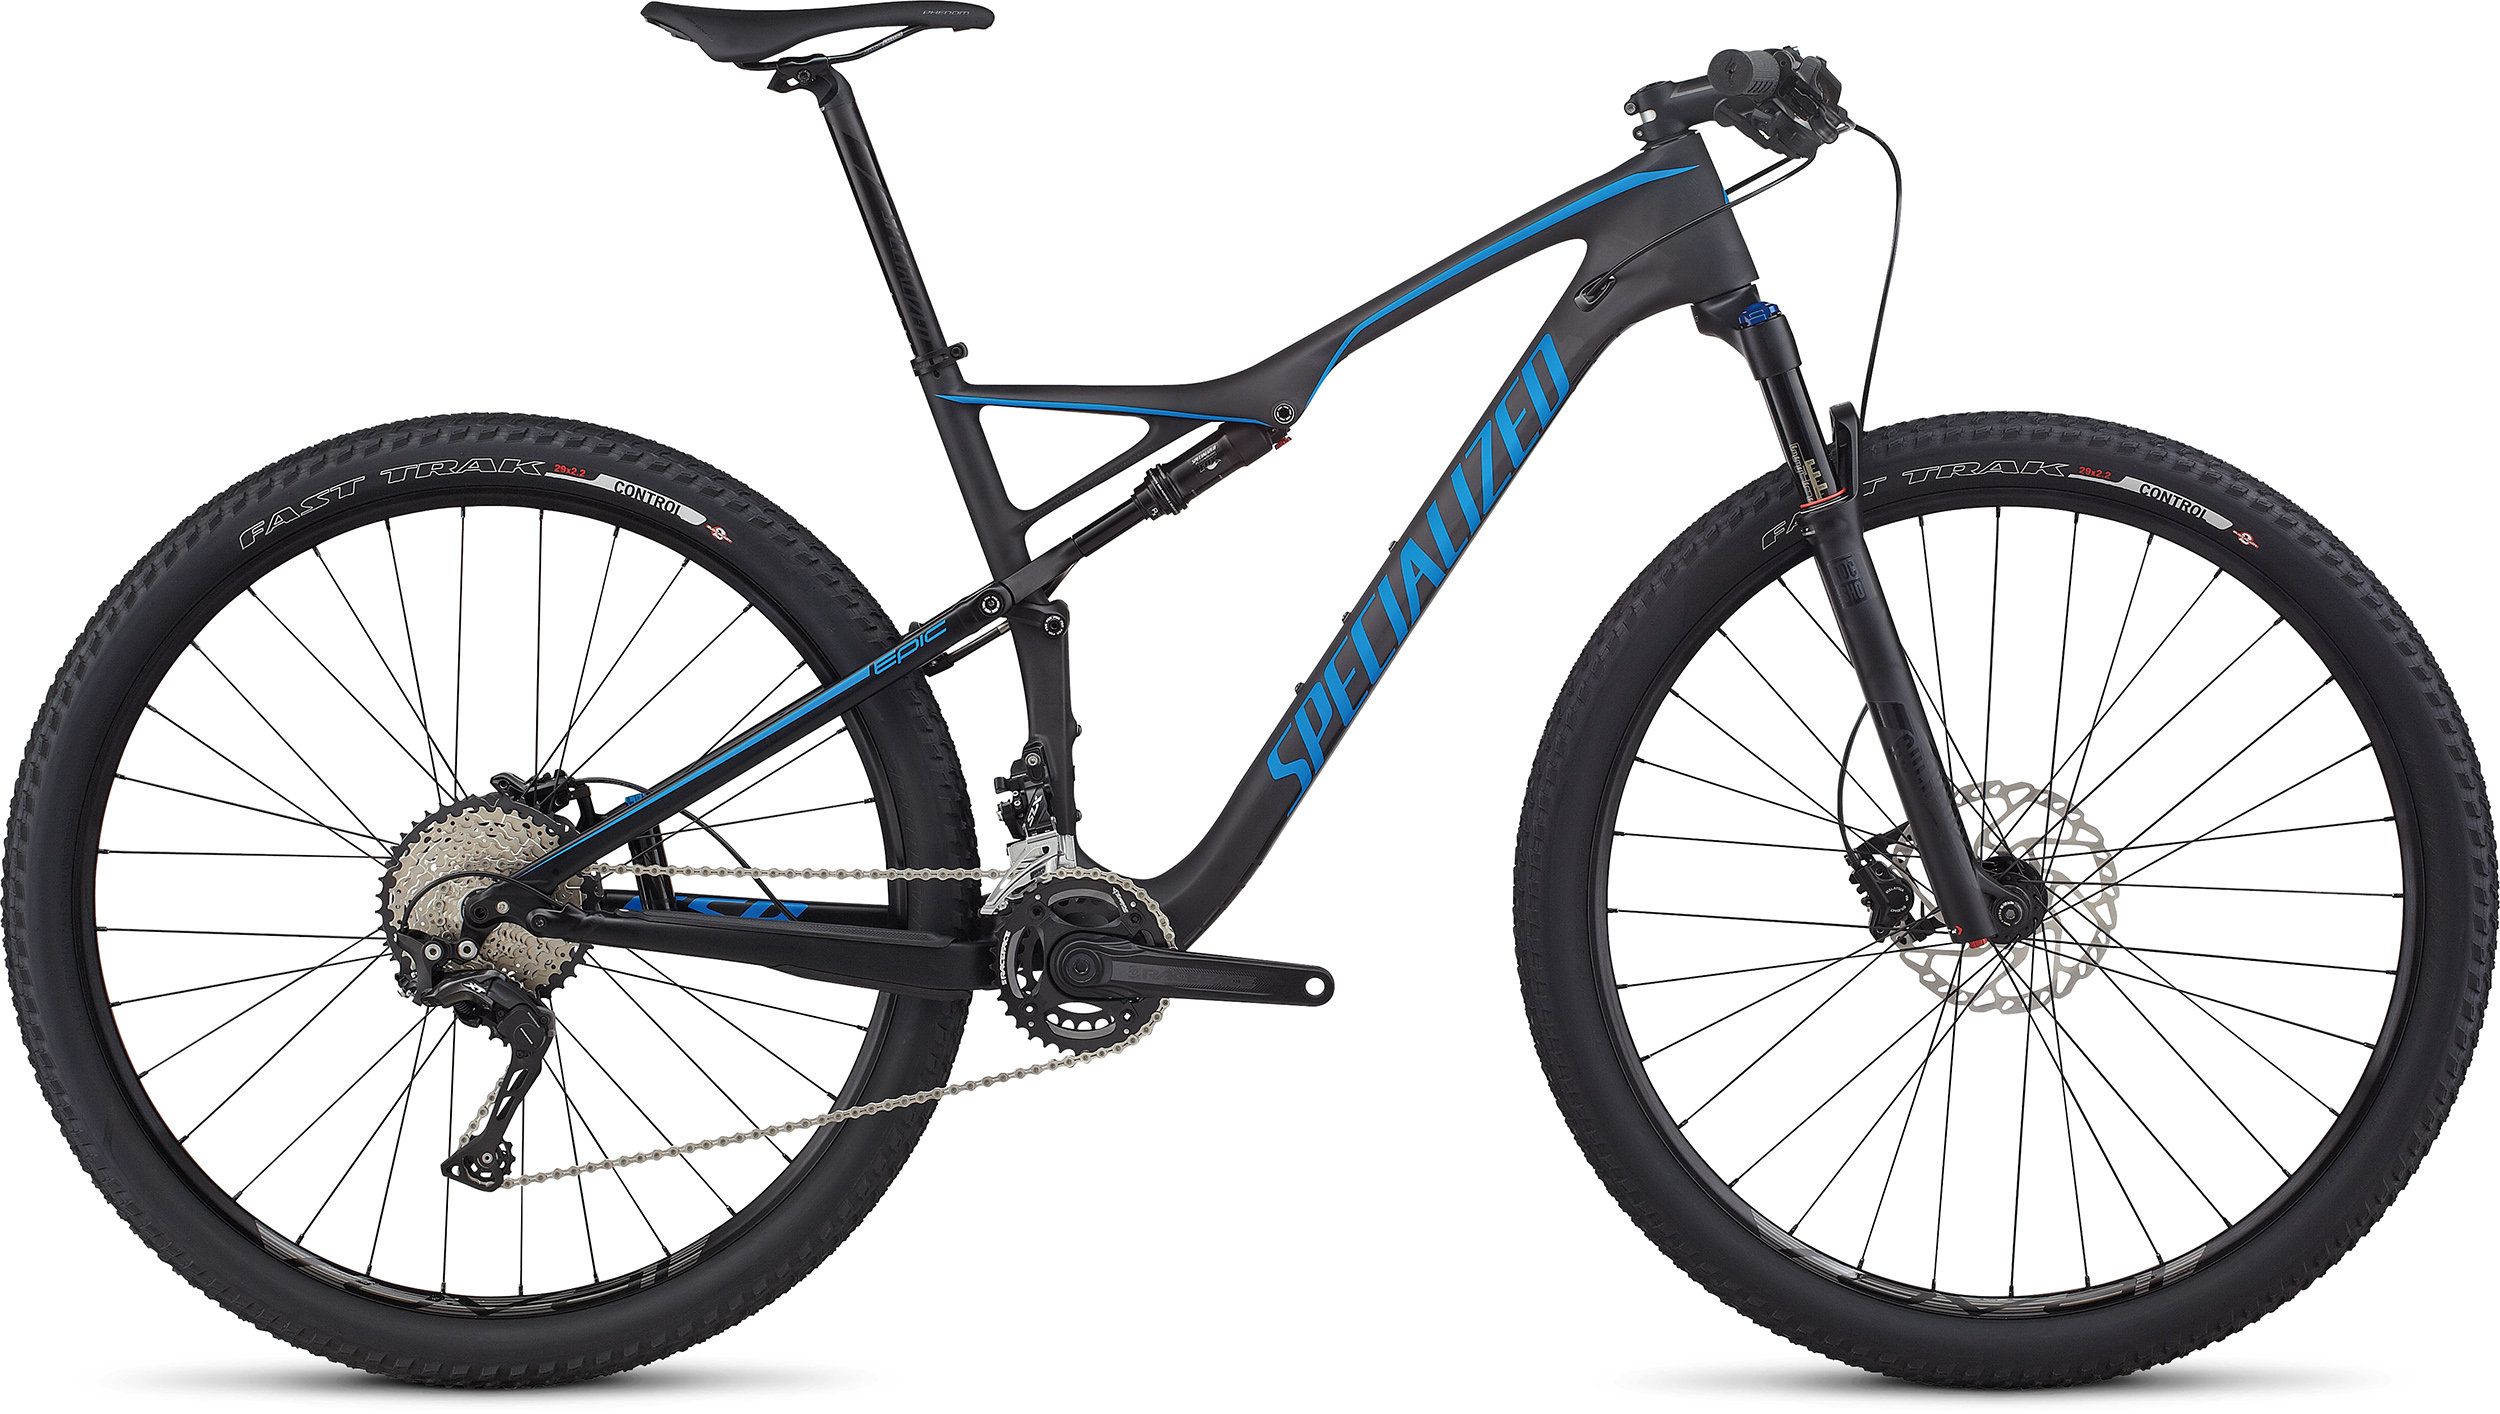 SPECIALIZED EPIC FSR COMP CARBON 29 CARB/NENBLU S - SPECIALIZED EPIC FSR COMP CARBON 29 CARB/NENBLU S